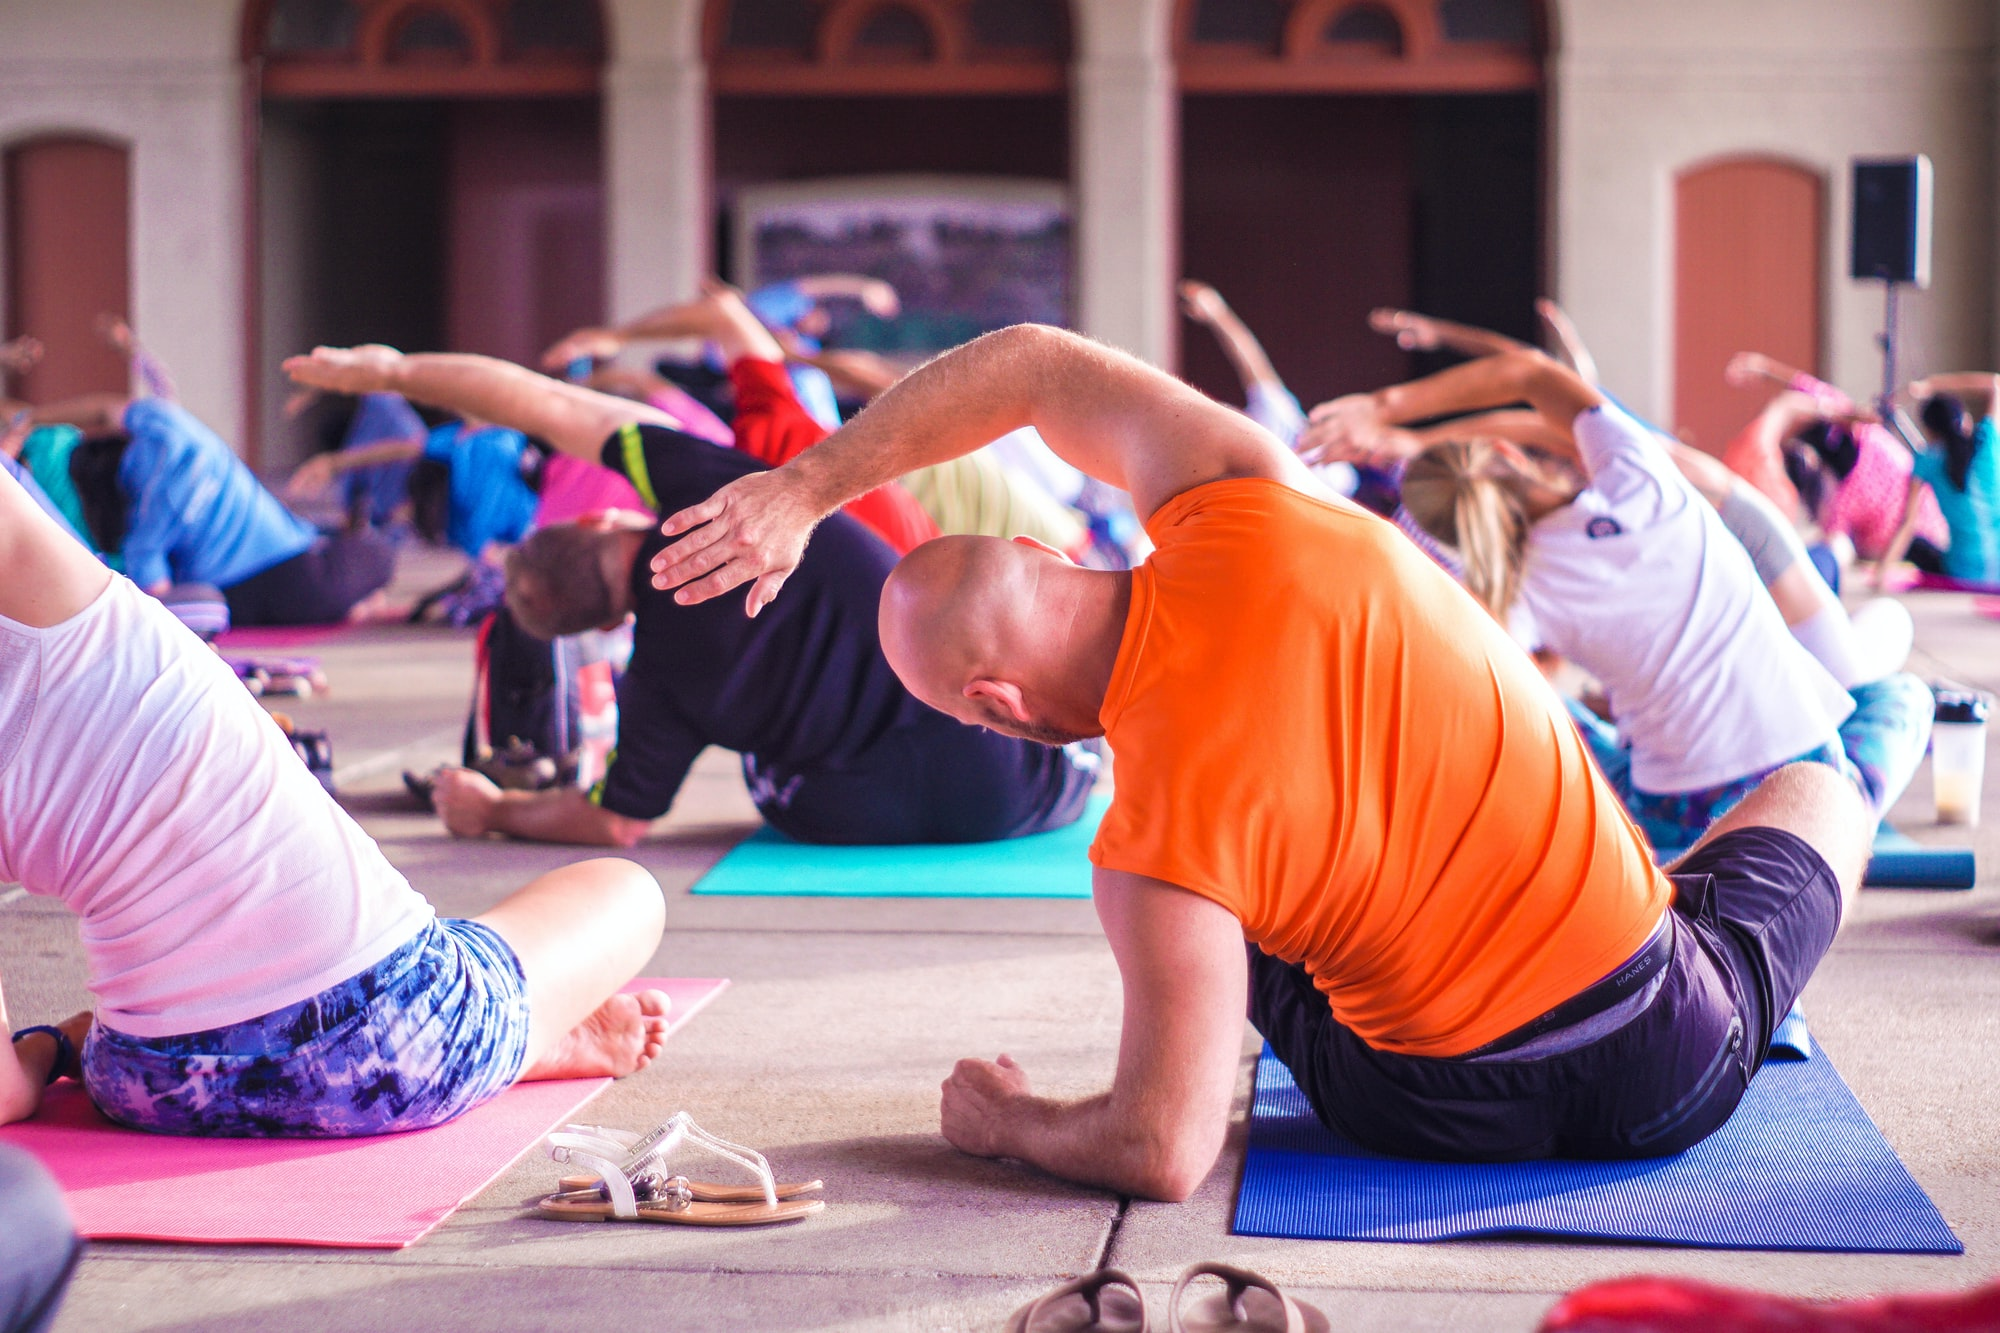 SDG3: Good Health and Well-being: Group workouts or yoga classes organised by companies can help alleviate work stress, promote good health and develop team spirit among employees. Photo by Anupam Mahapatra / Unsplash